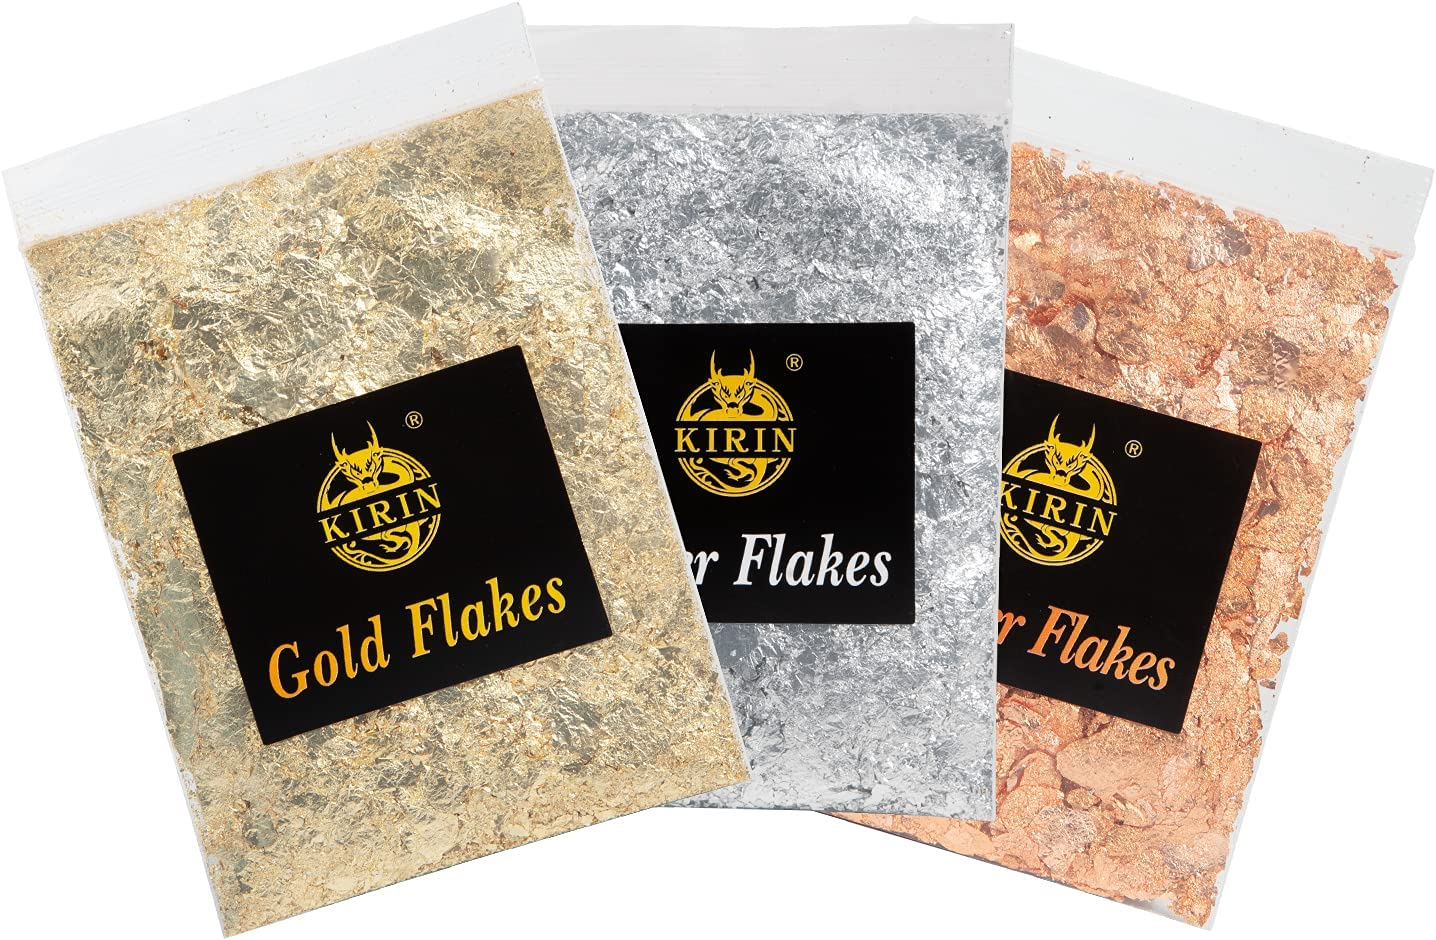 Imitation Gold Leaf Flakes Kirin 3 Bottles Gilding Metallic Foil Flakes for Slime Crafts Painting Furniture Nails Art Resin Jewelry Making (Gold Silver Copper Colors 9g-3 g/Bag)